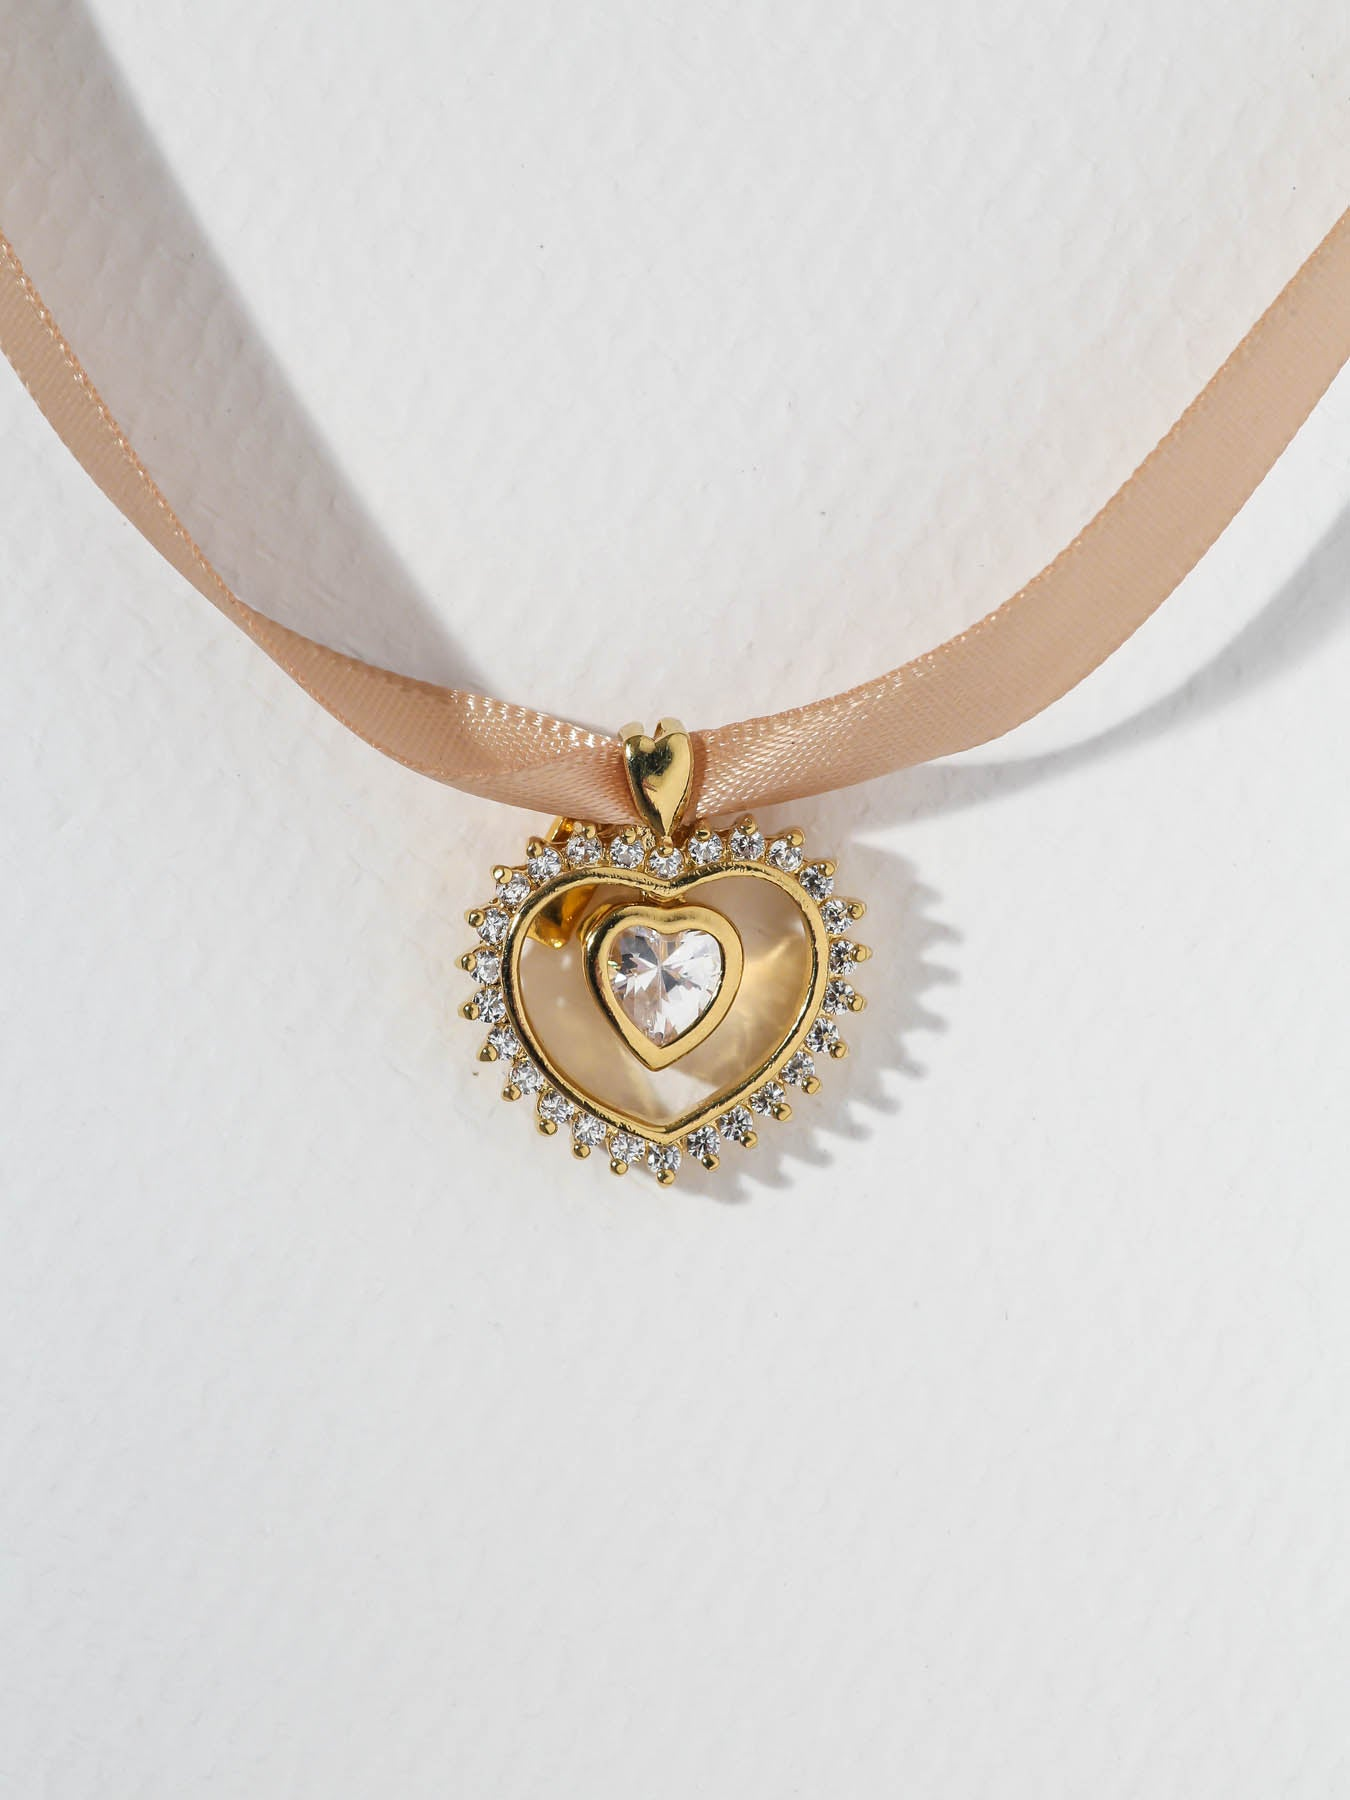 The Nude Heart Ribbon Necklace